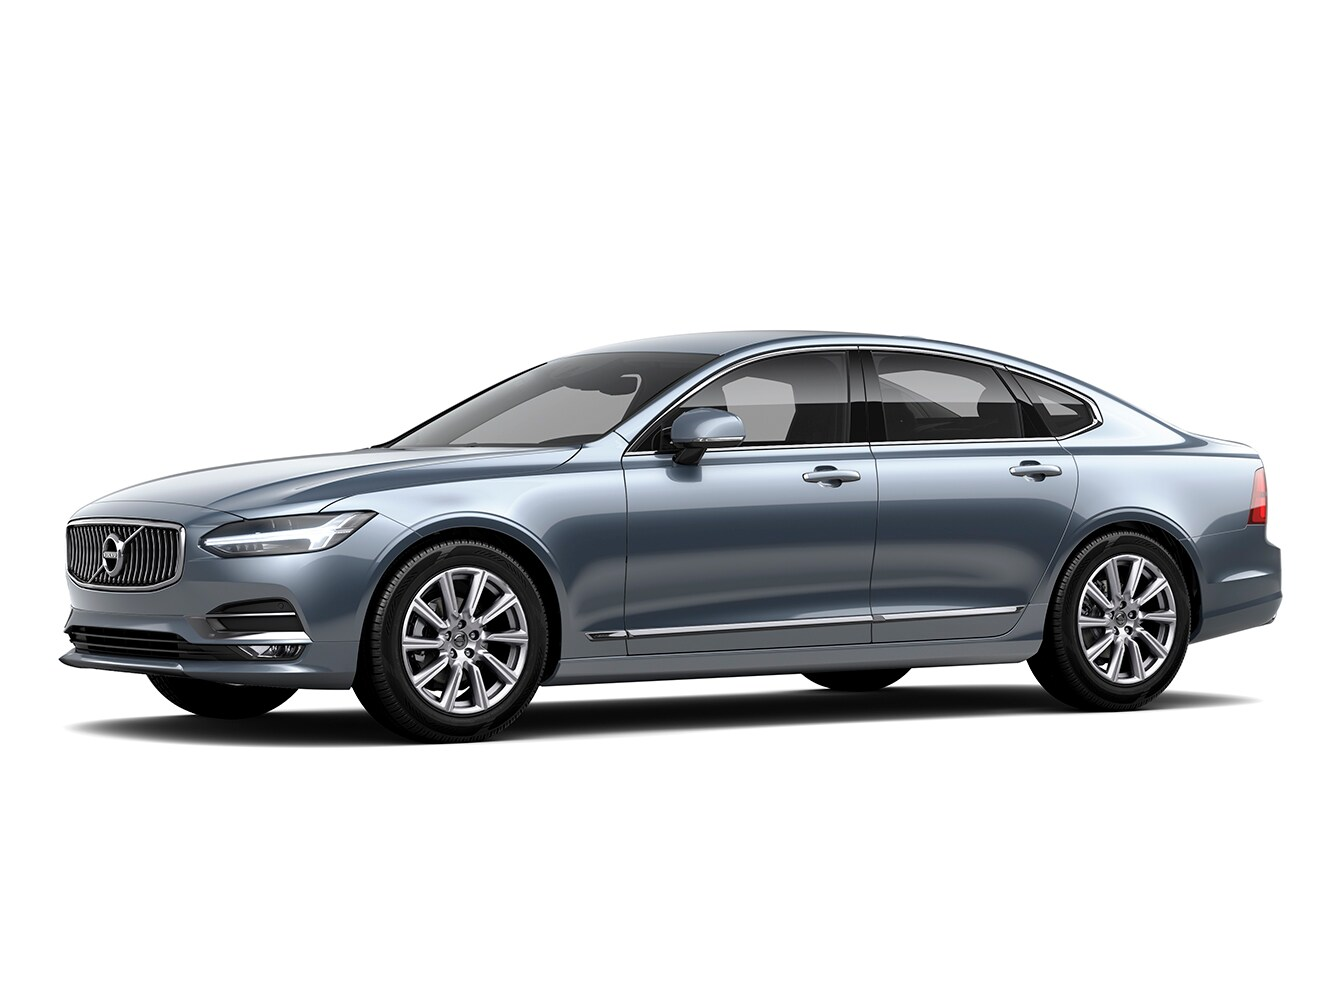 Το Volvo S90 Inscription